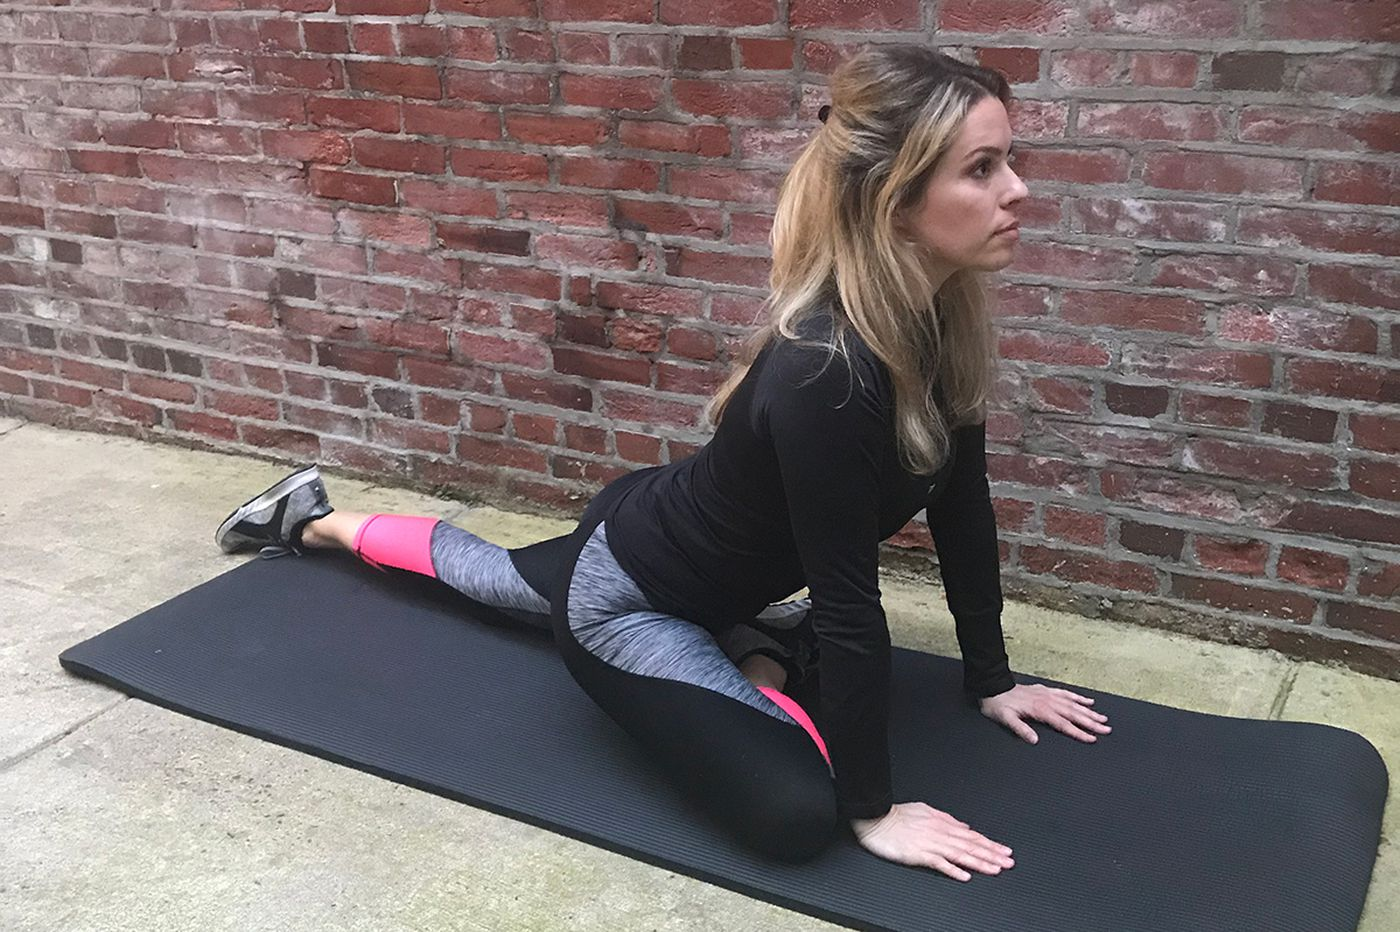 Can't touch your toes? 4 simple stretches to improve your flexibility